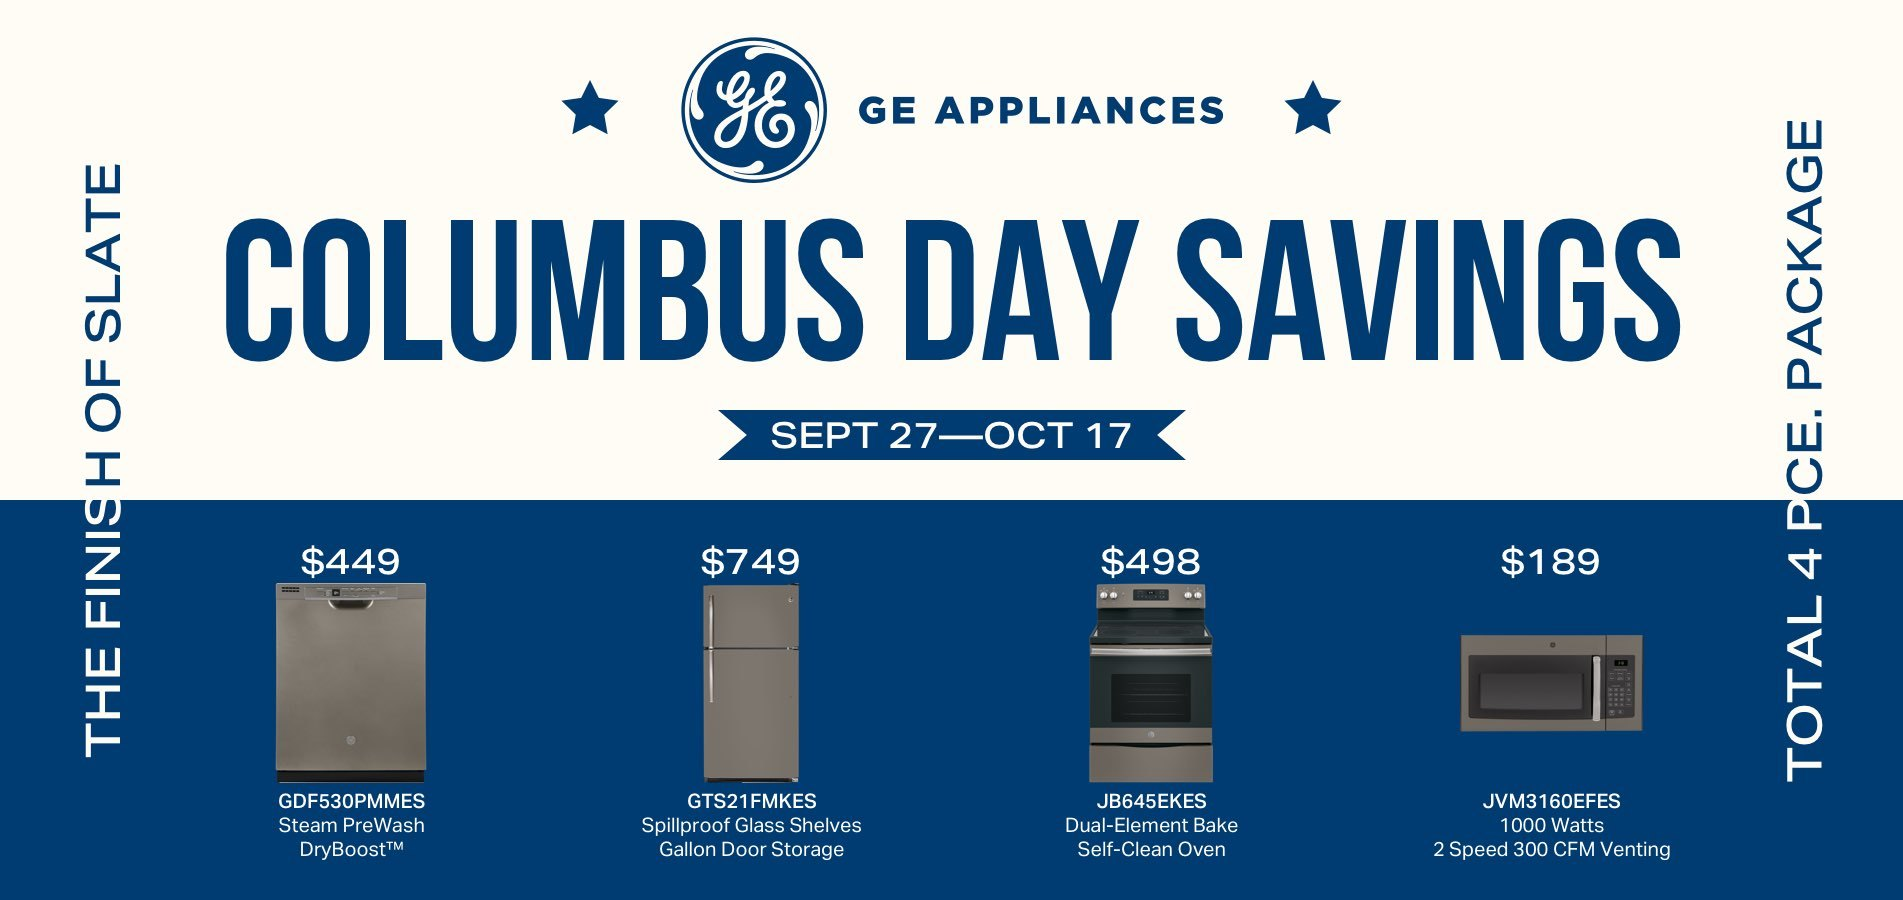 GE Columbus Day Savings